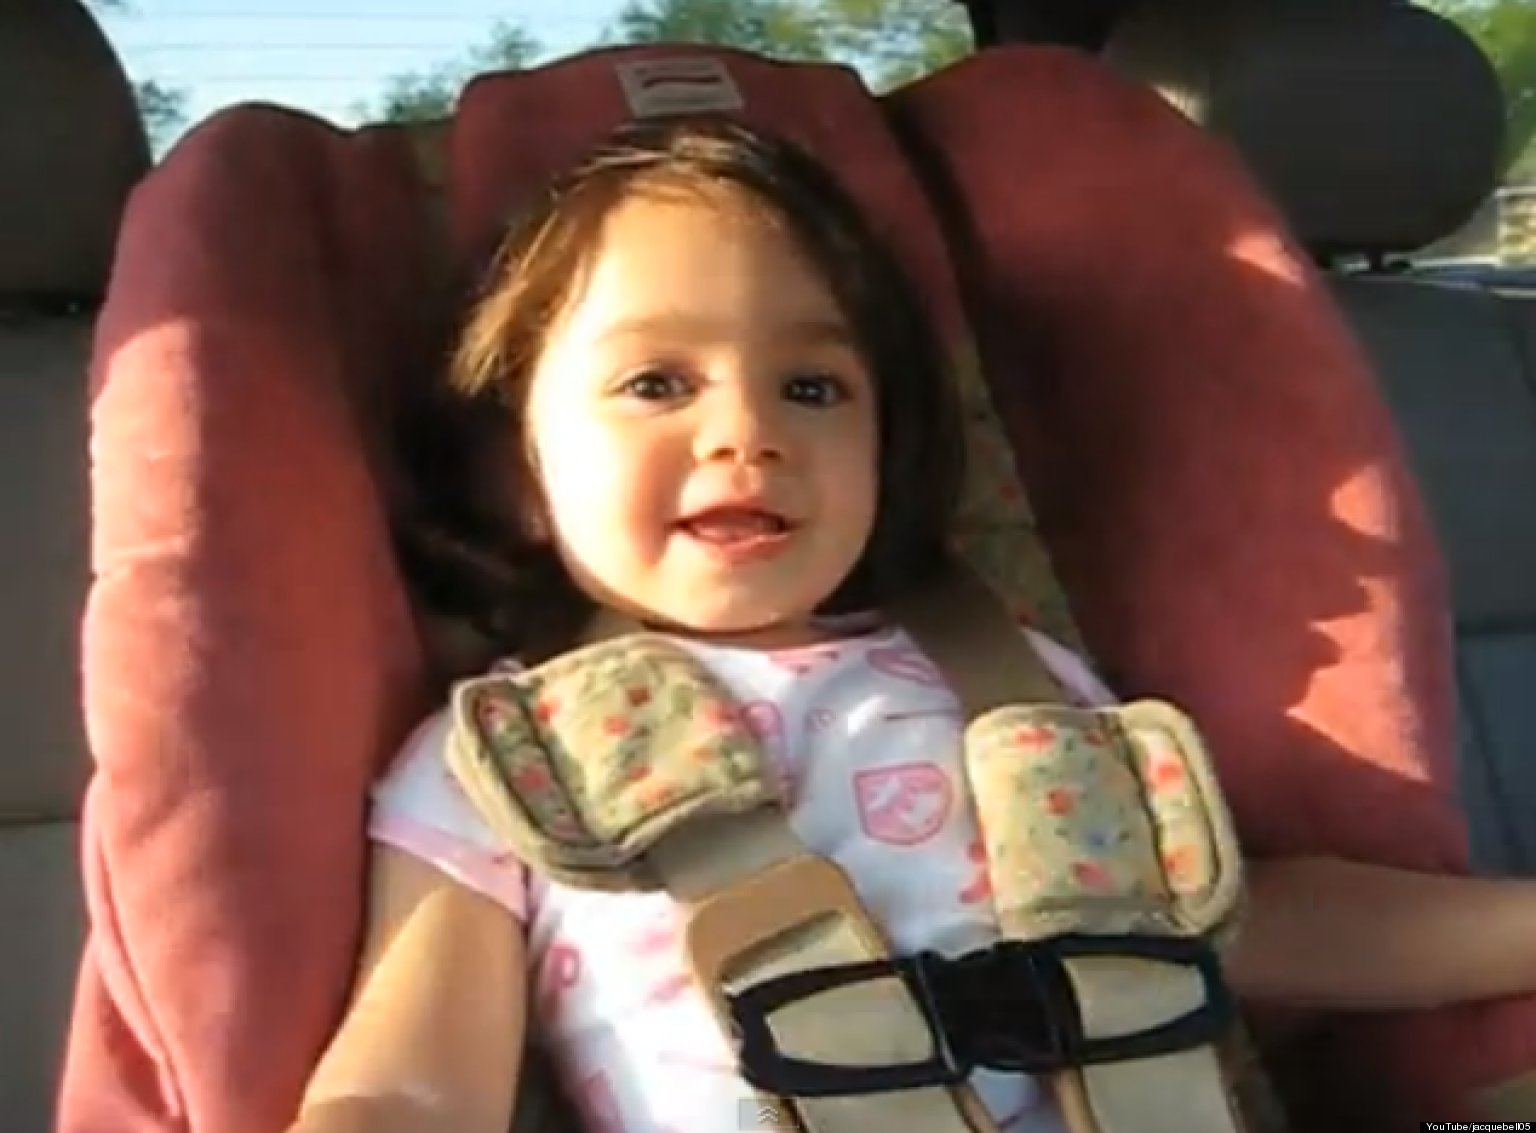 WATCH: 2-Year-Old Knows (Almost) All The Words To Pearl Jam Song